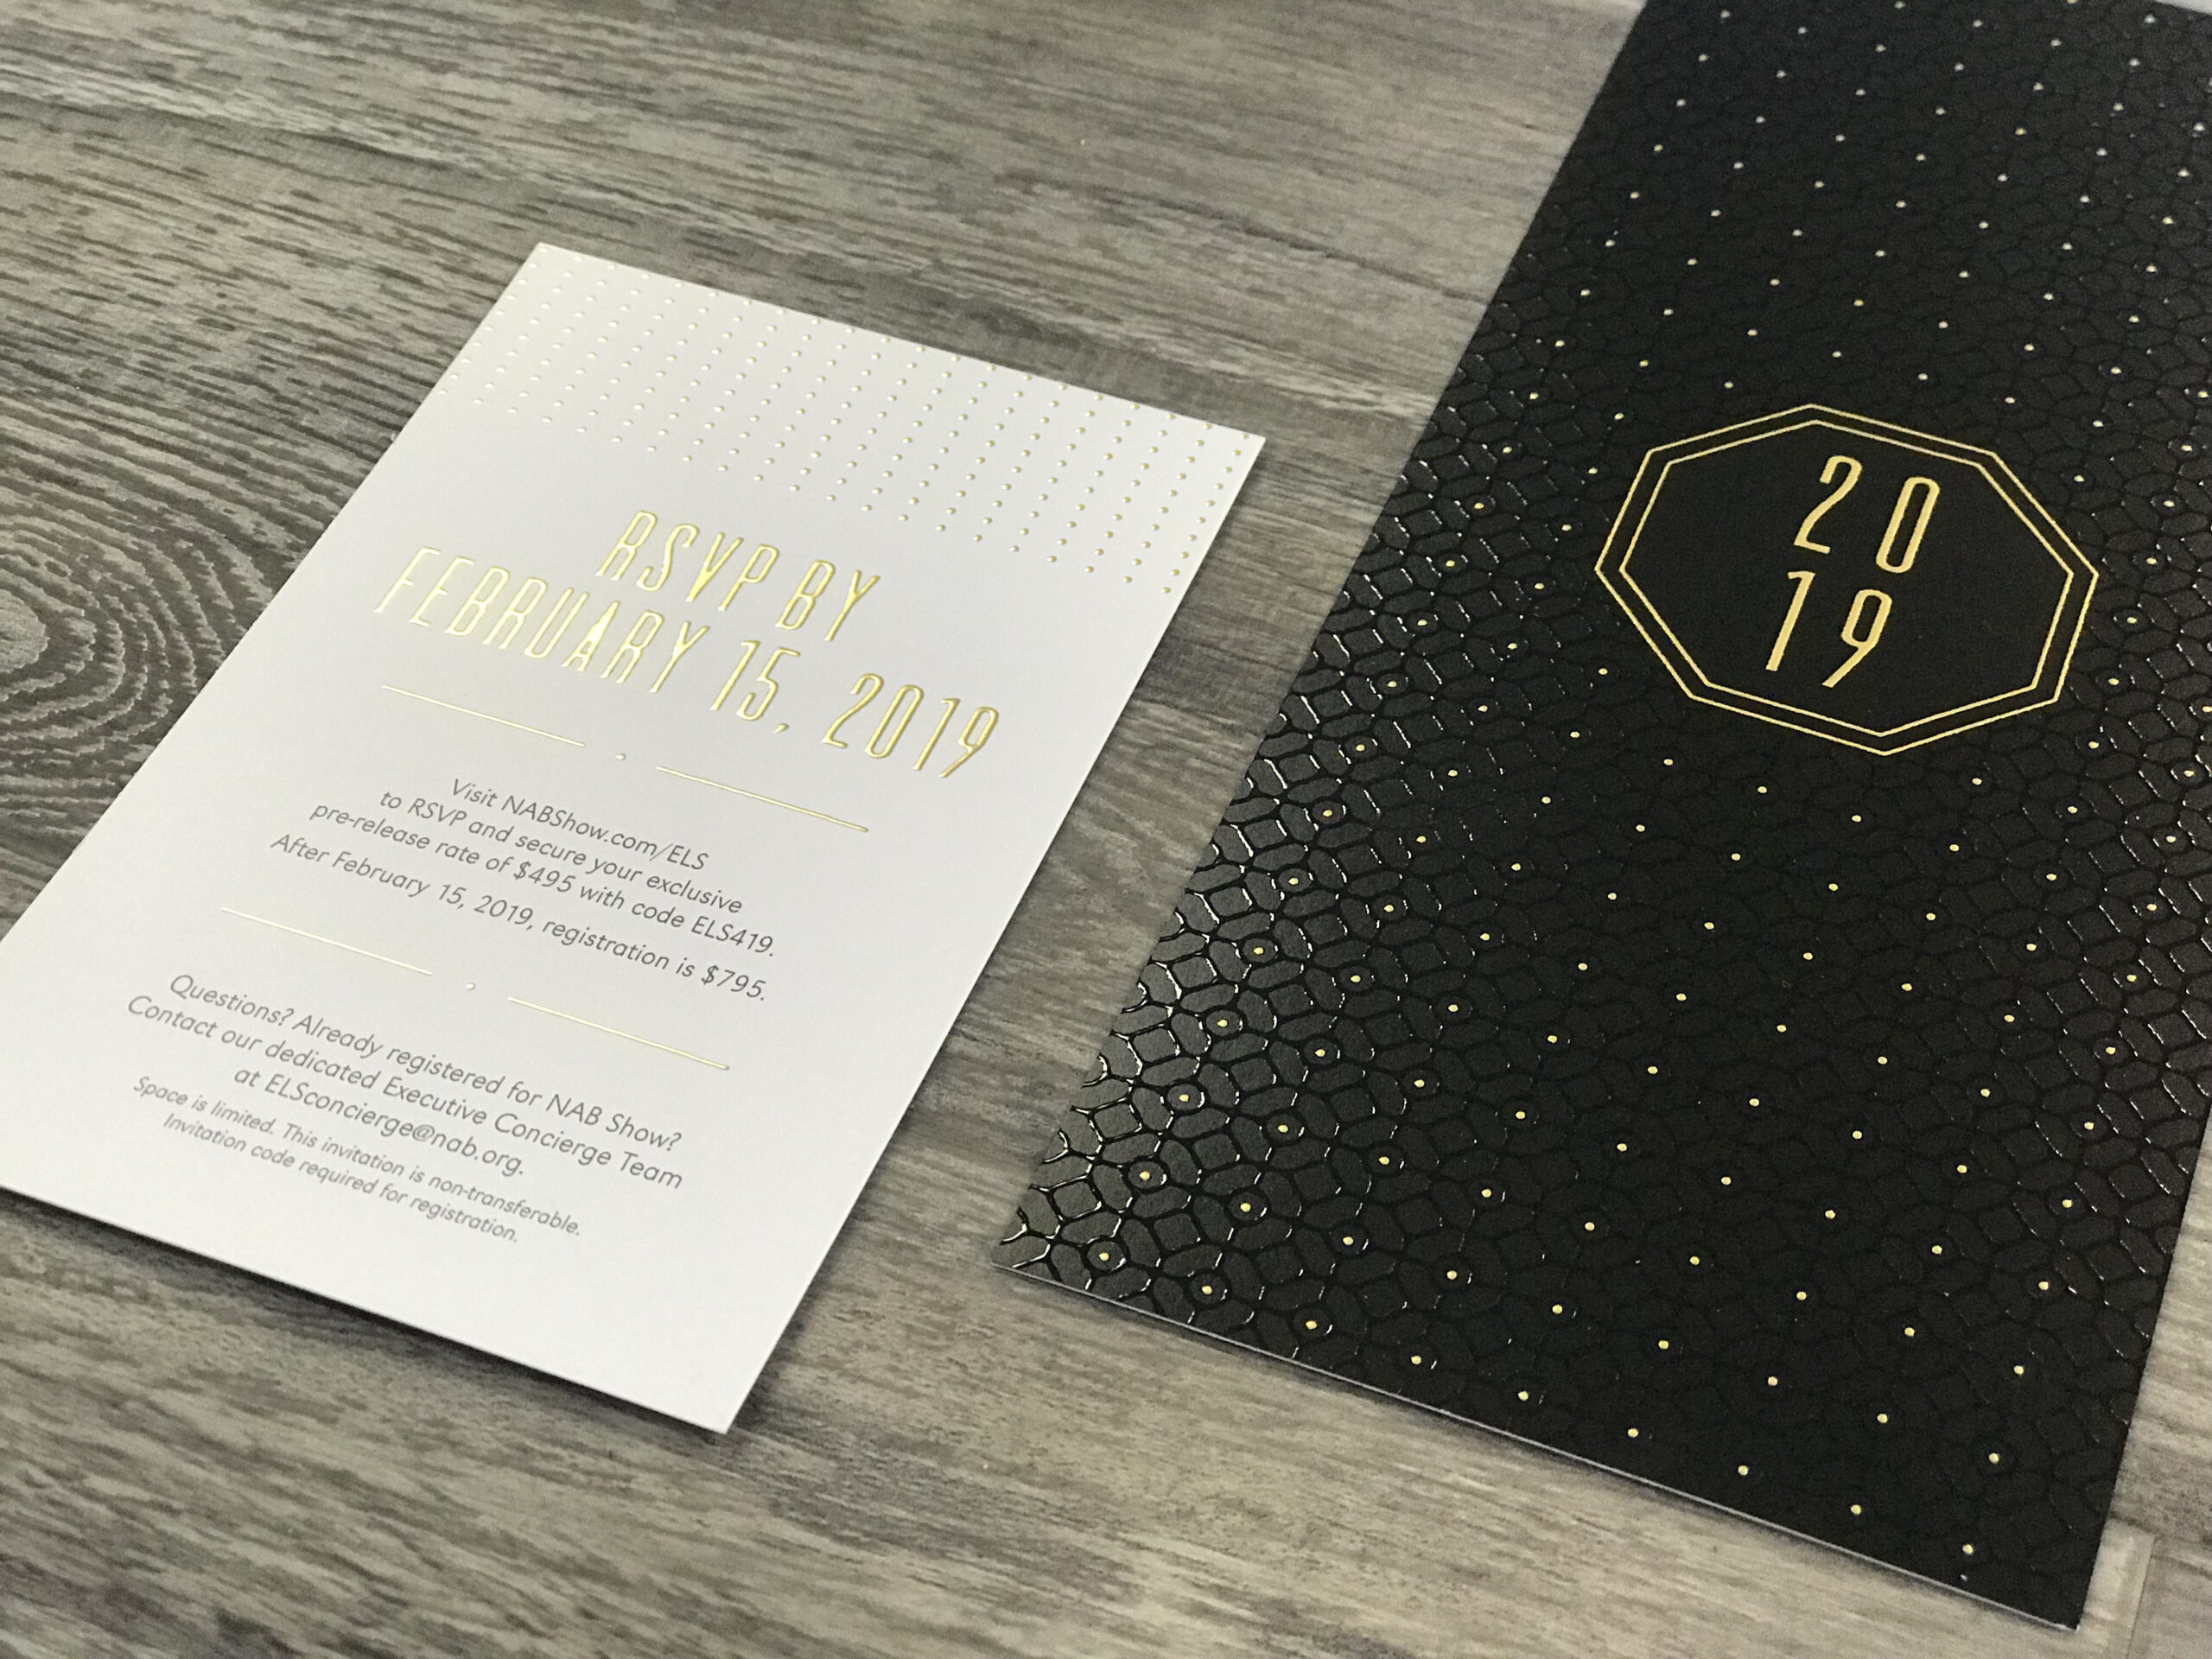 2019 event RSVP marketing collateral